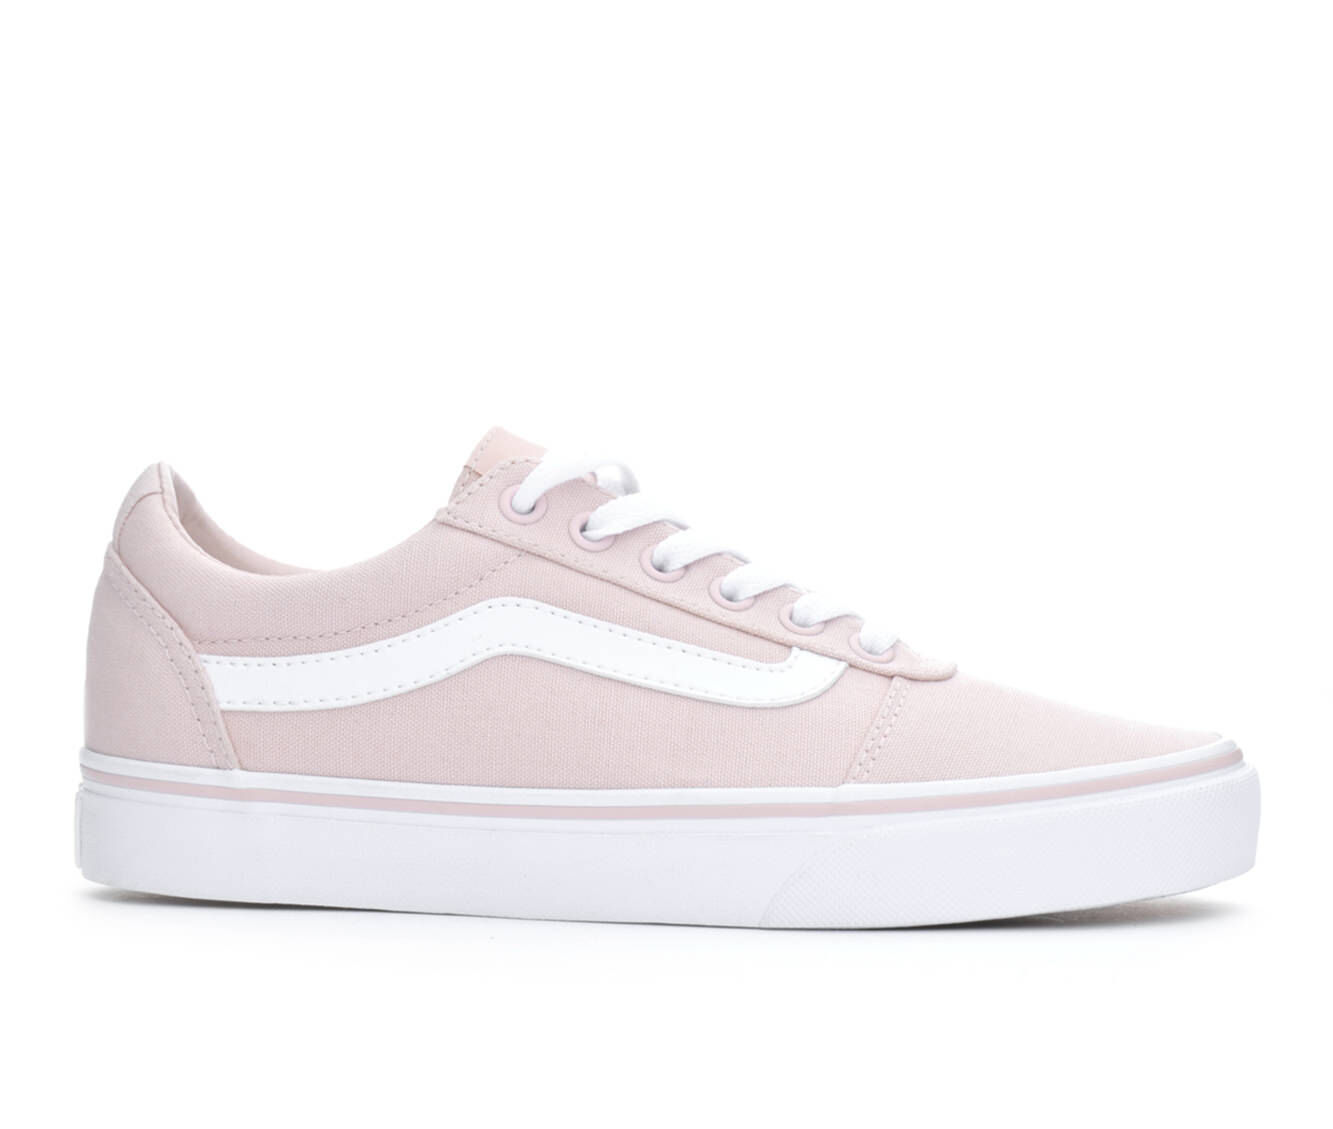 Women s Vans Ward Skate Shoes   Shoe Carnival Women  39 s Vans Ward Skate Shoes